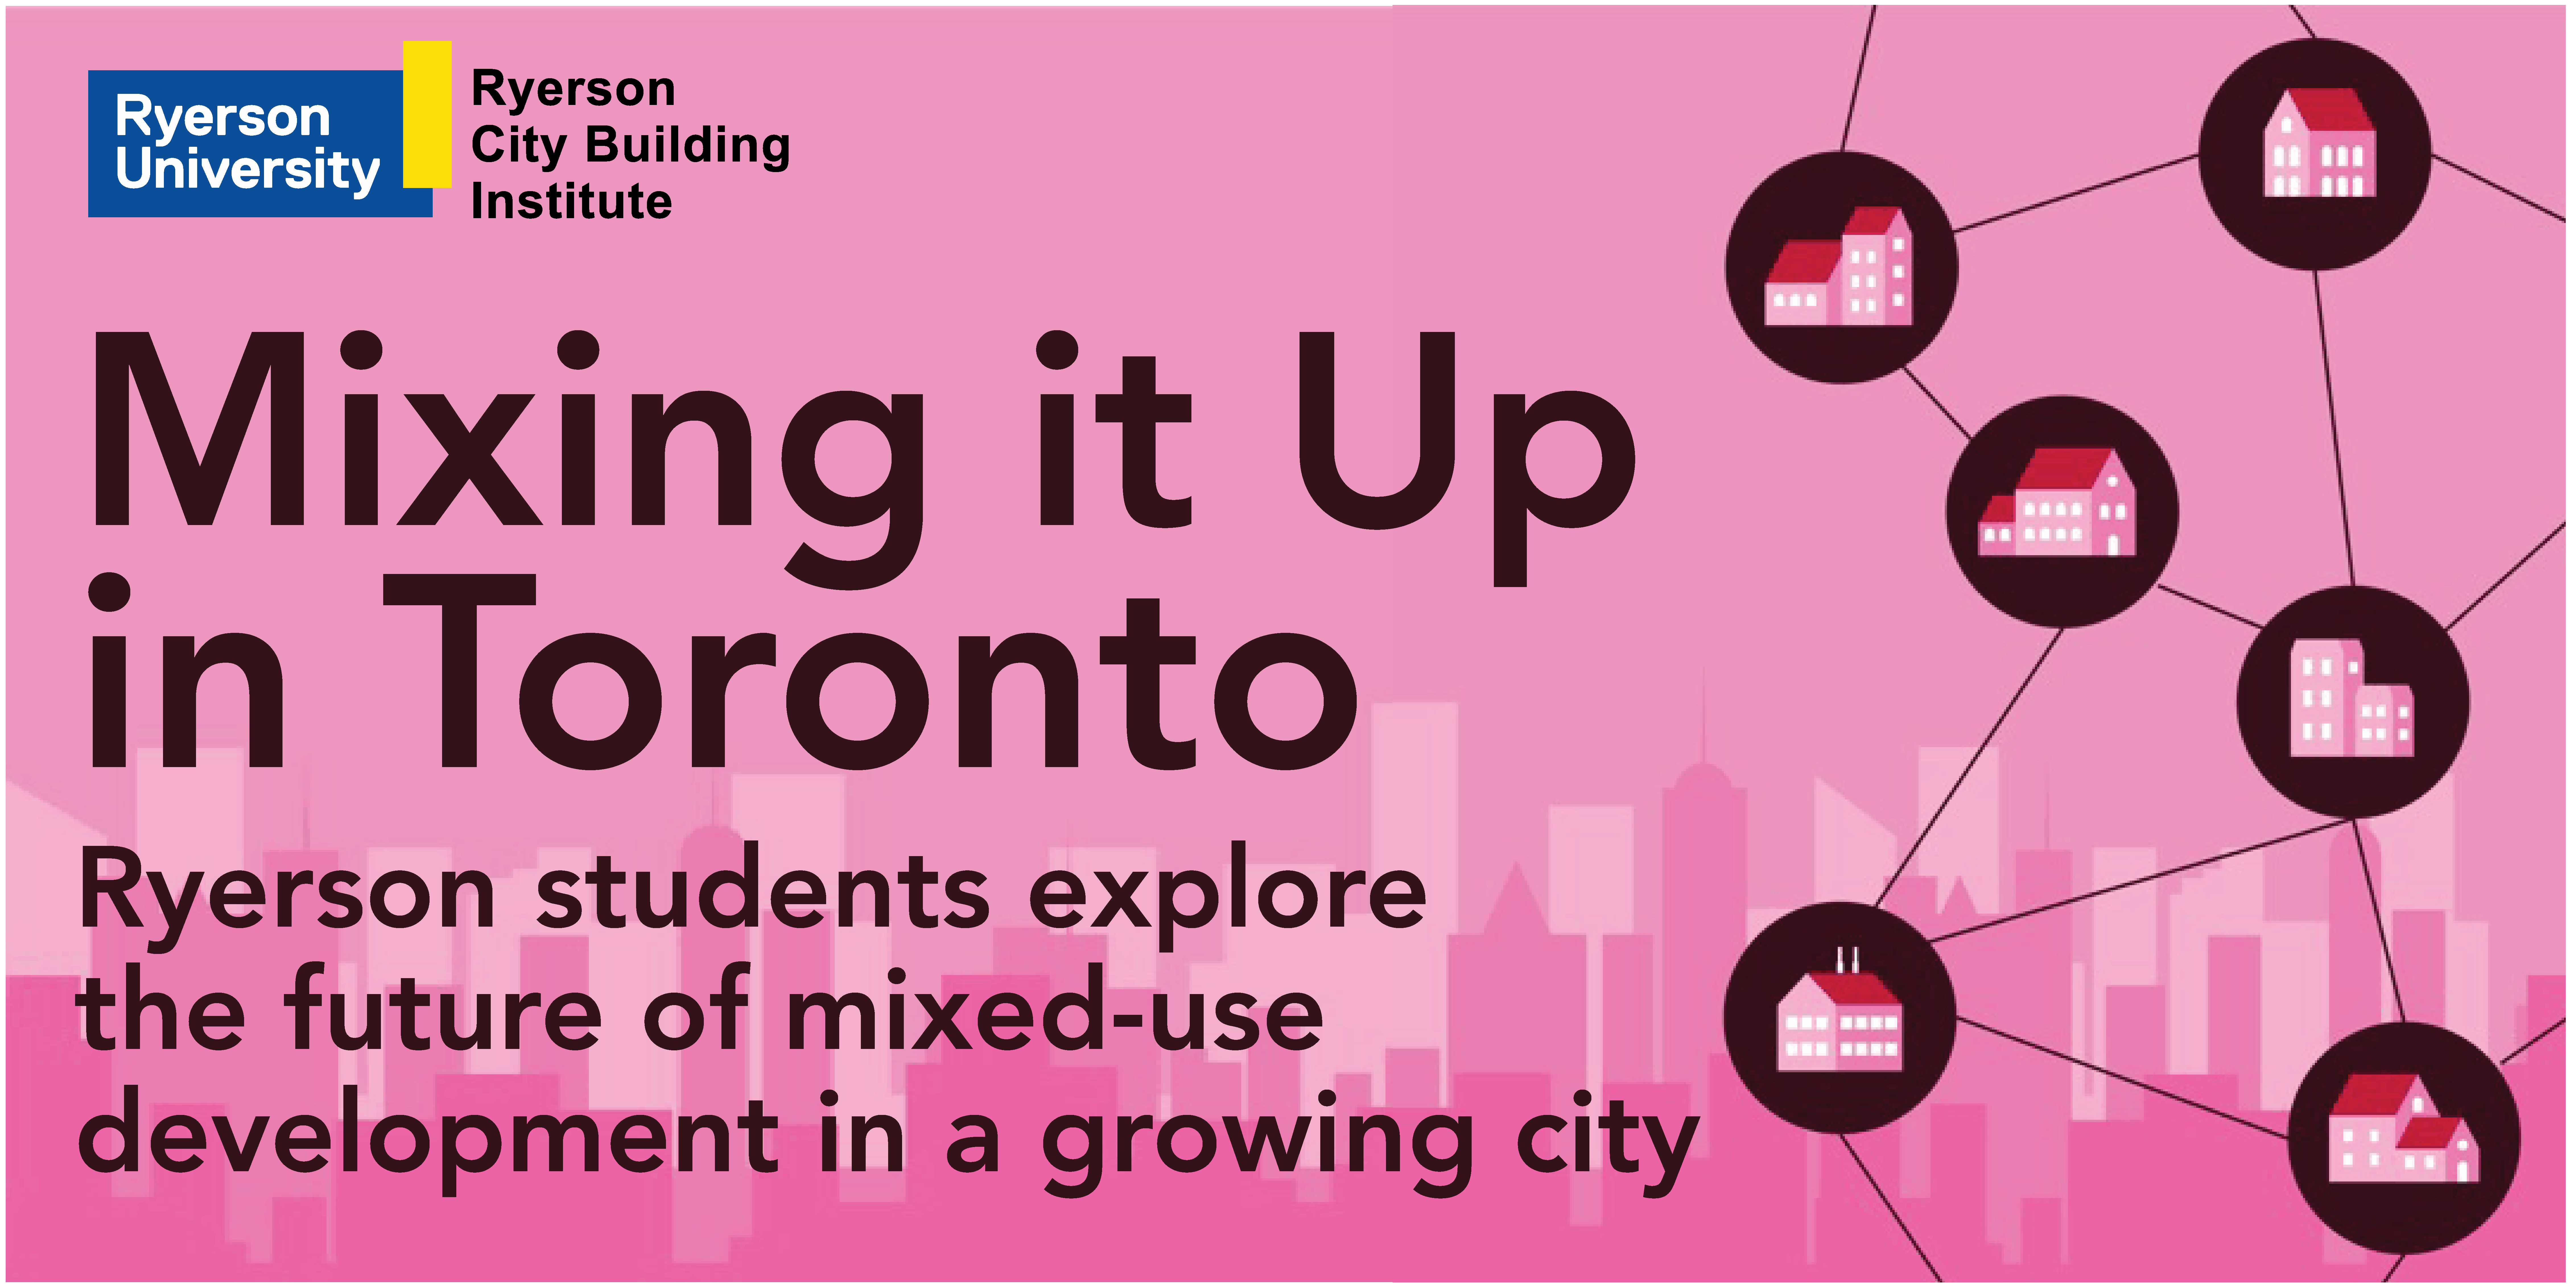 Mixing it Up in Toronto: Ryerson students explore the future of mixed-use development in a growing city